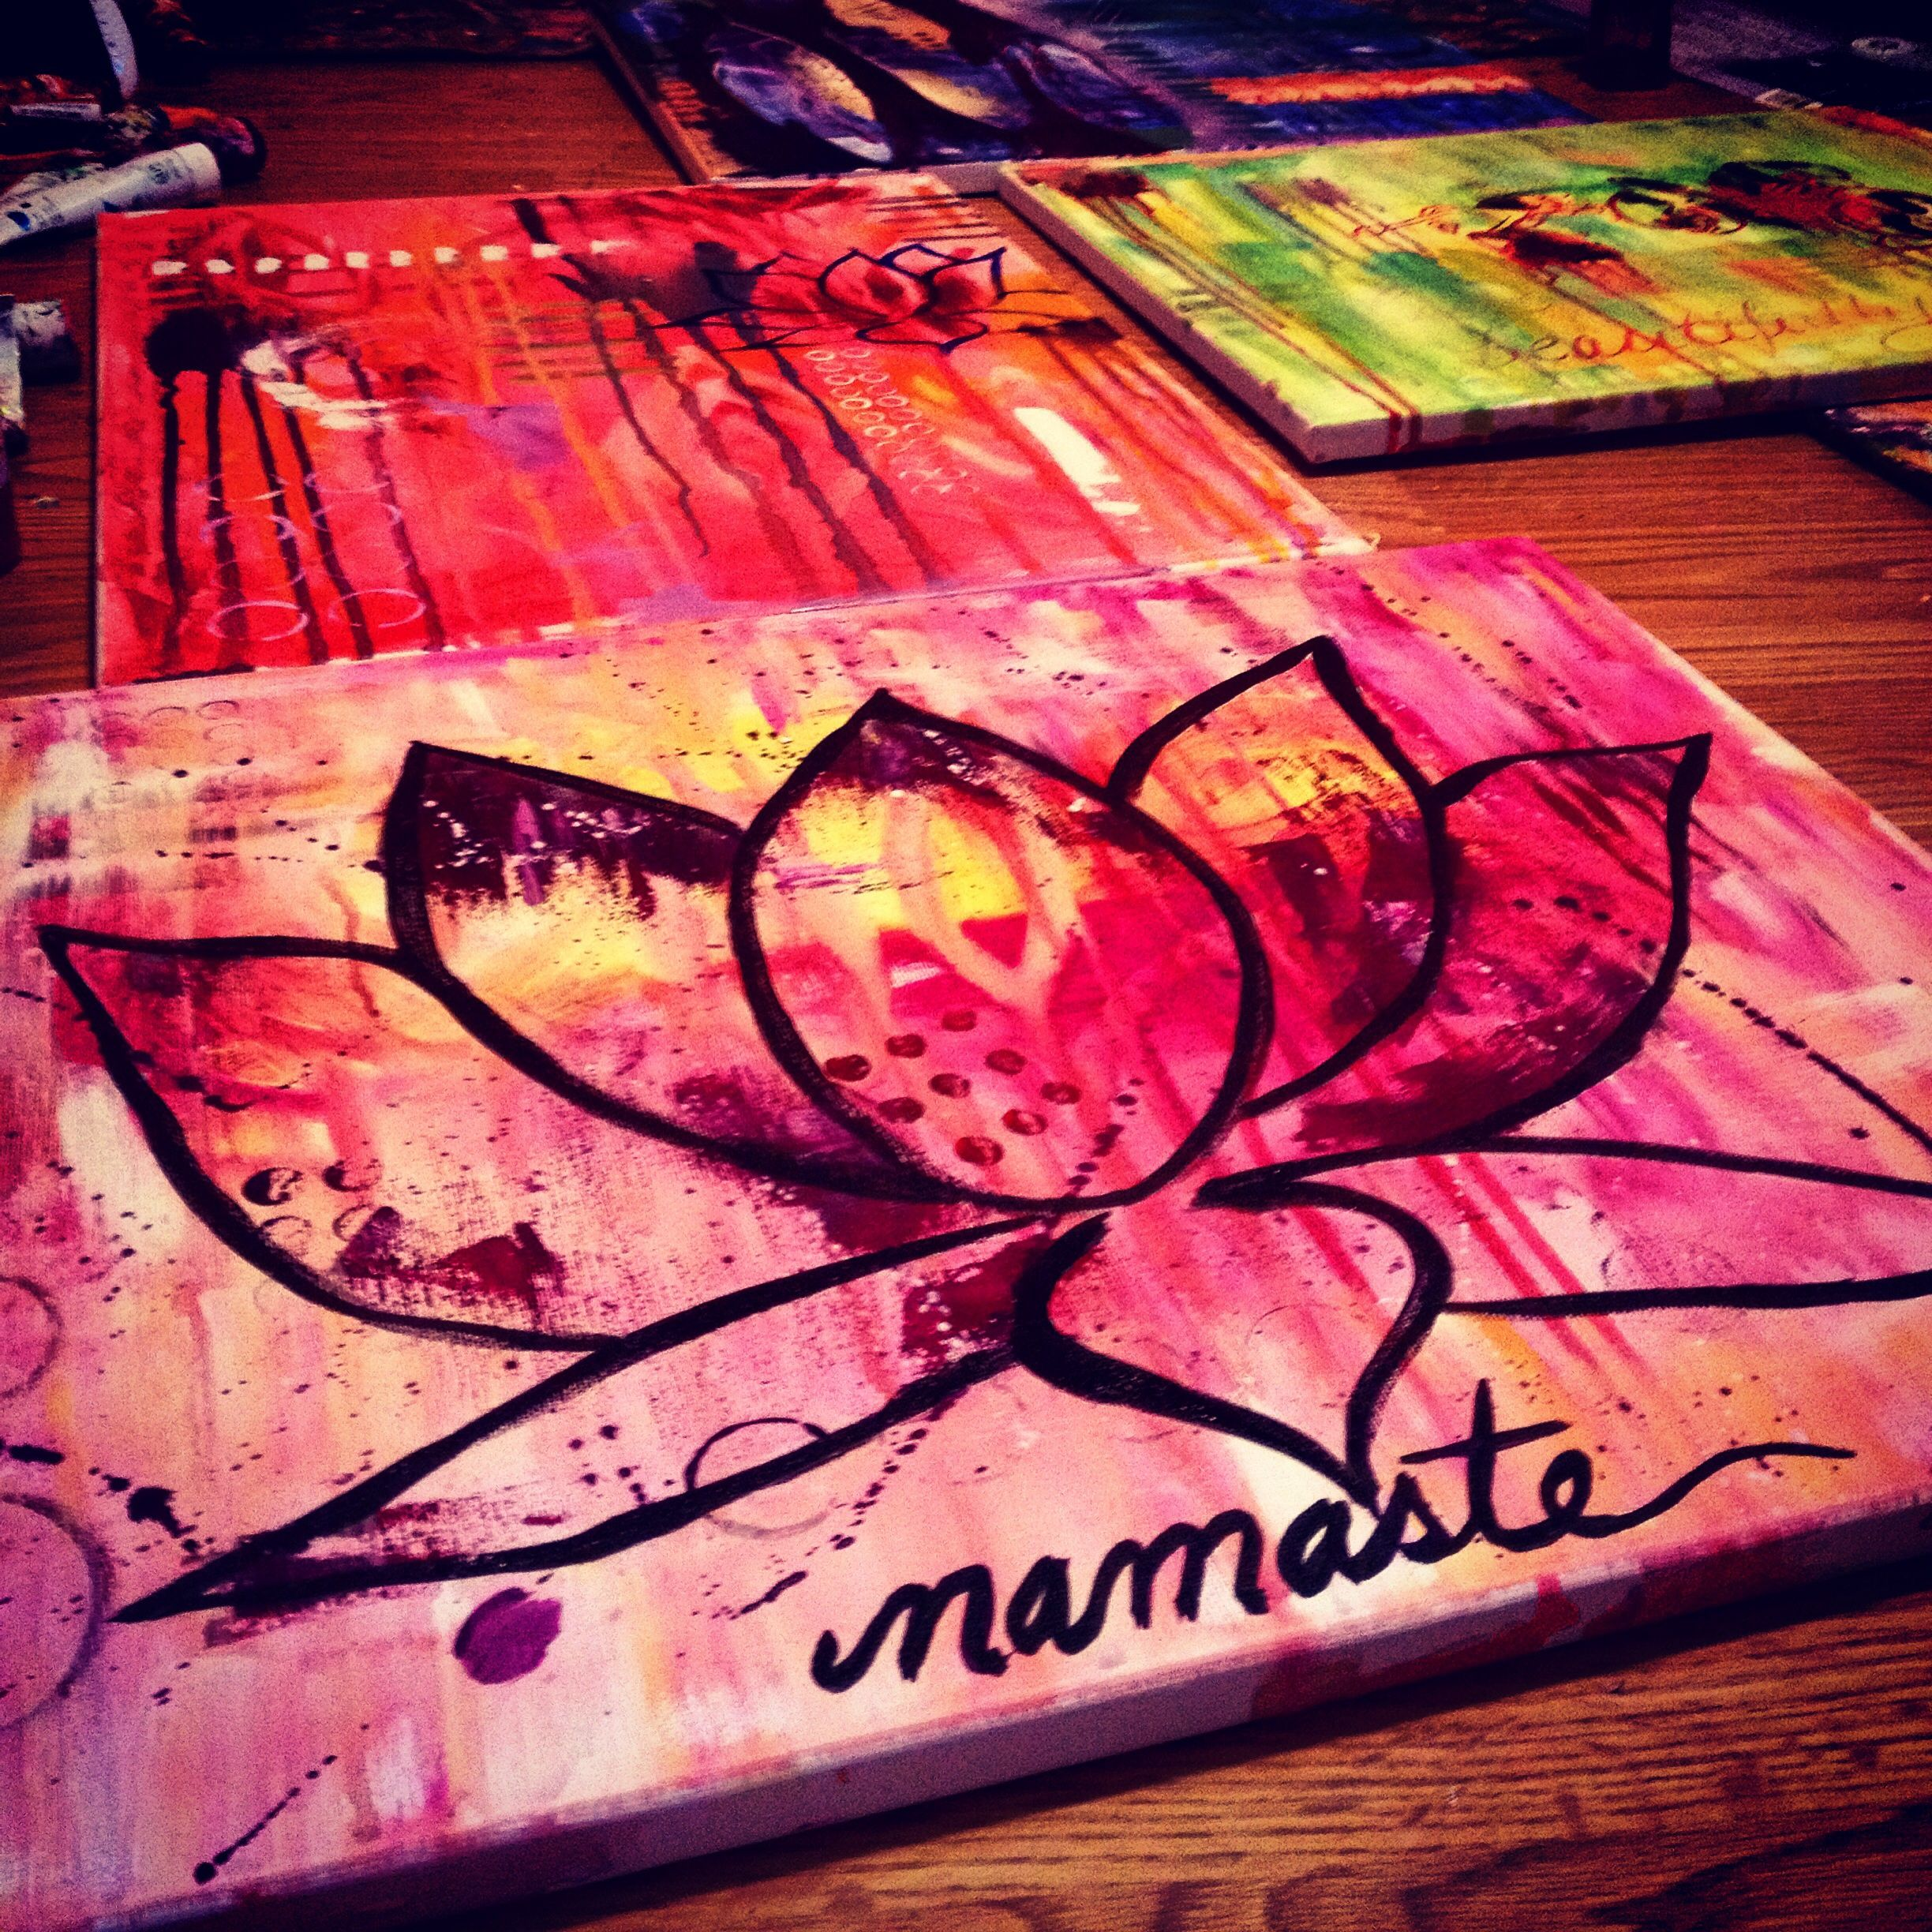 Namaste lotus flower yoga abstract acrylic painting on canvas what a